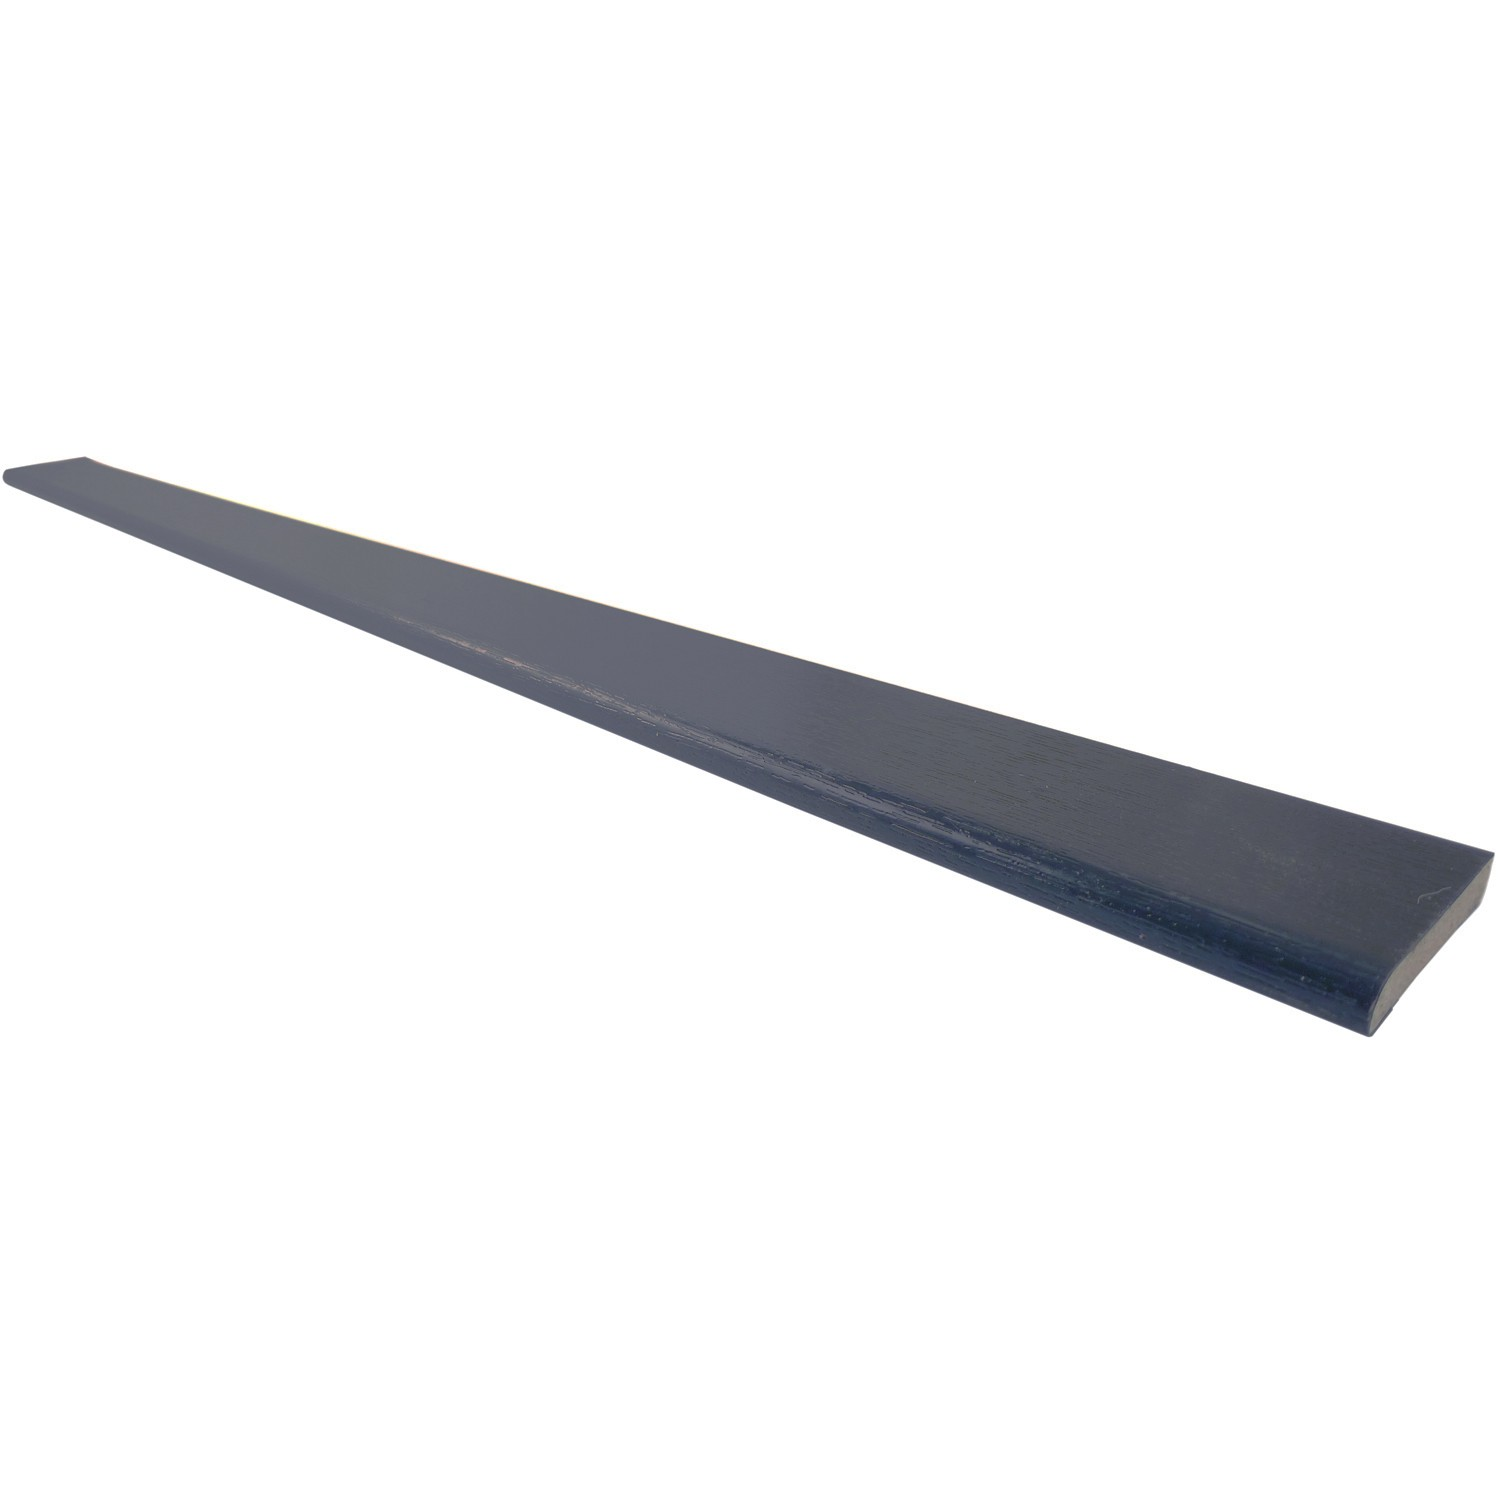 Freefoam 6mm Plastic Architrave - Woodgrain Anthracite Grey, 40mm, 5 Metre